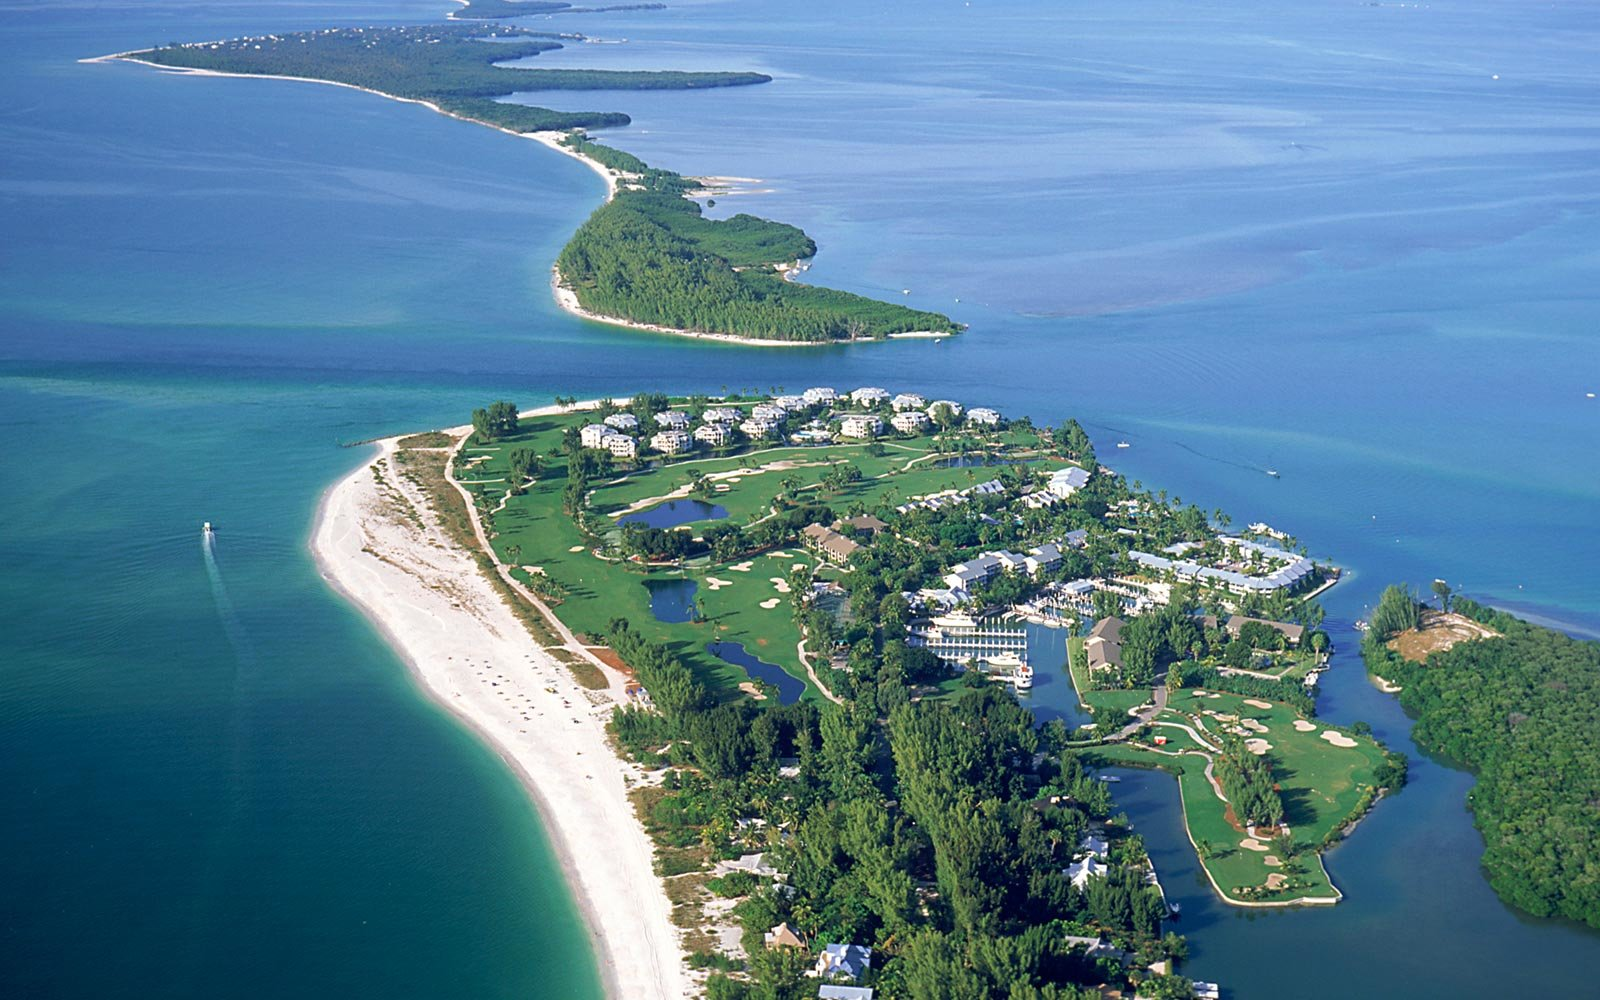 Sanibel Island Fl Hotels: Florida's Sanibel Island: What To See, Do And Eat